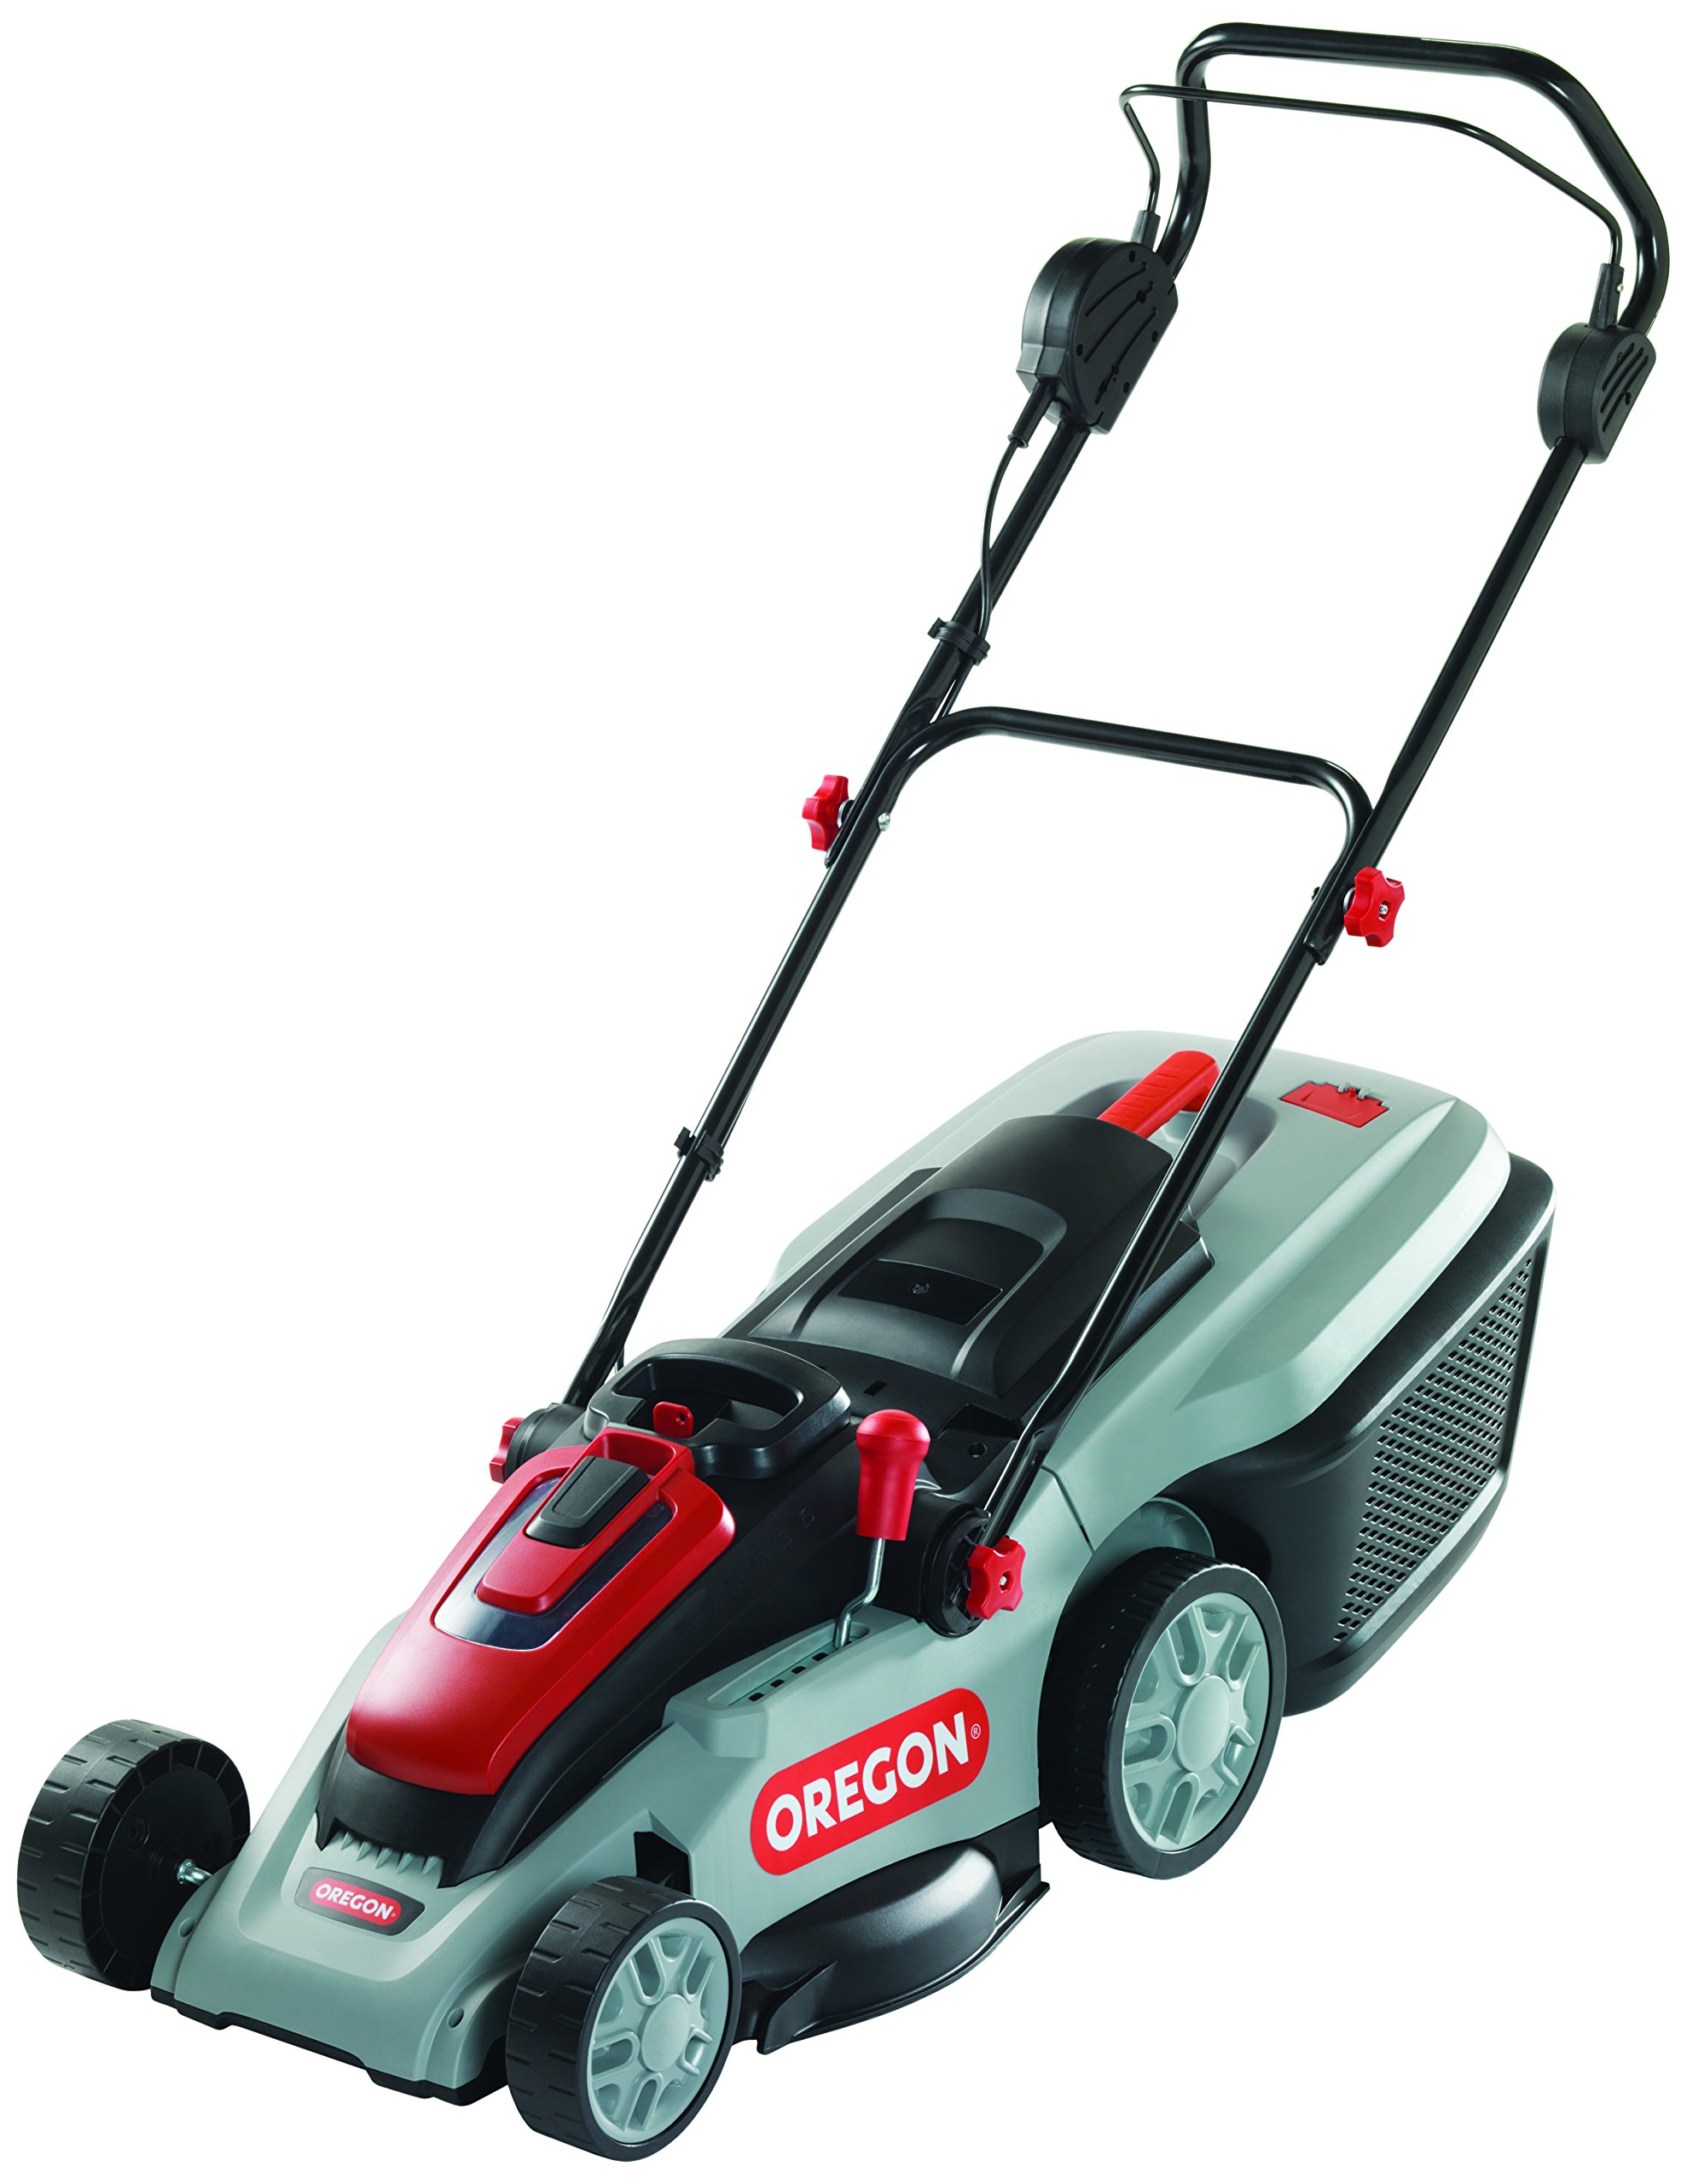 Oregon Cordless LM300 Lawn Mower - Tool Only by Oregon